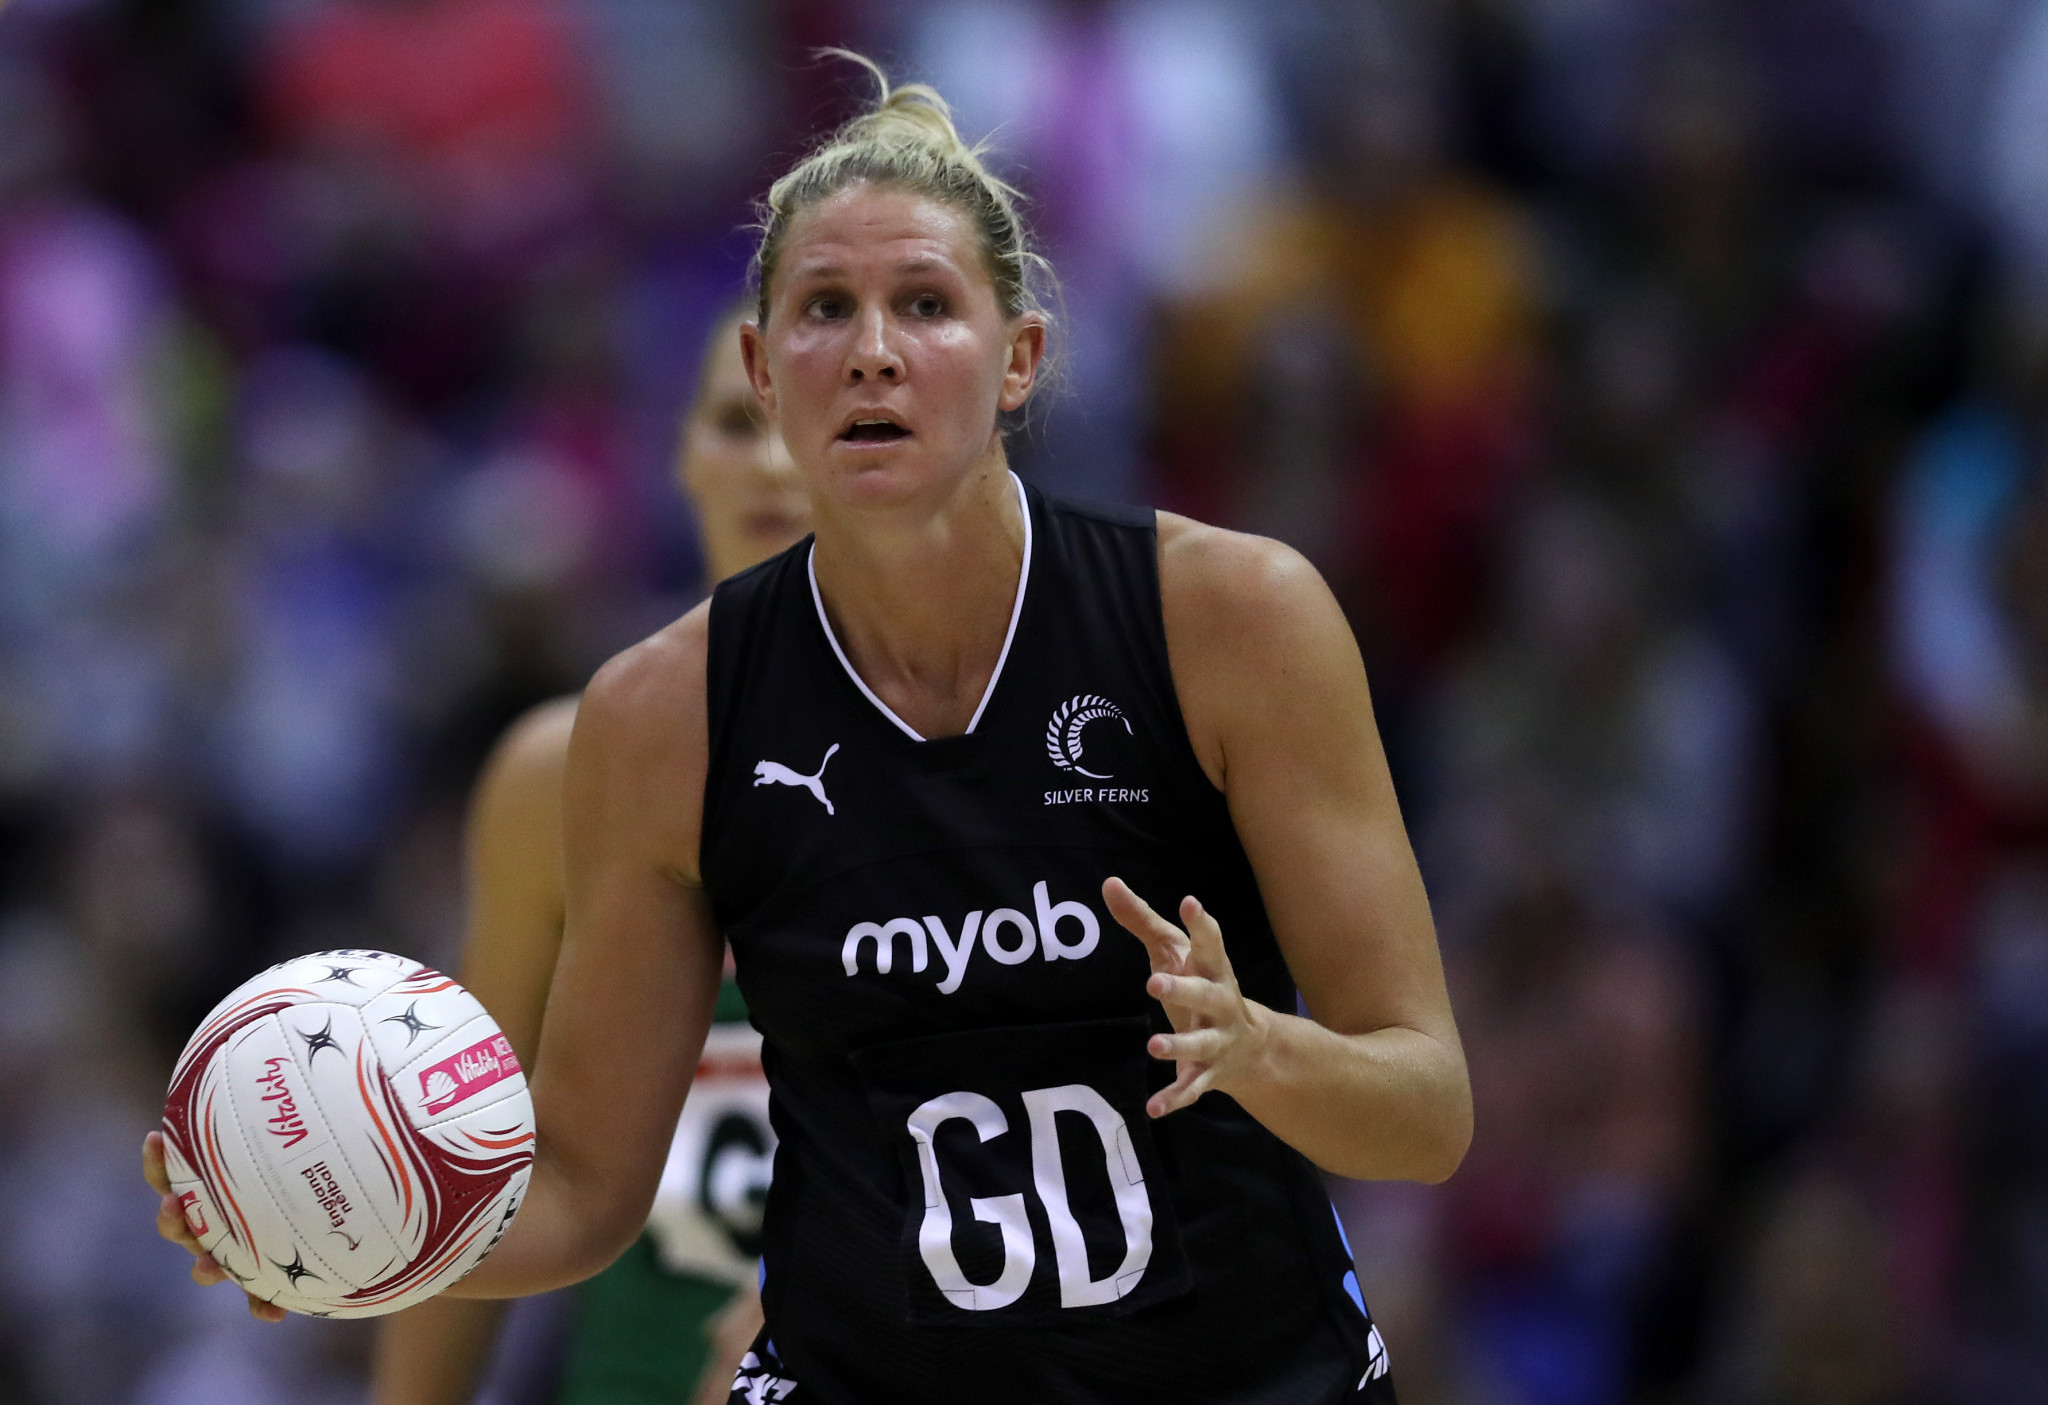 Netball New Zealand announce three-year media partnership with MediaWorks